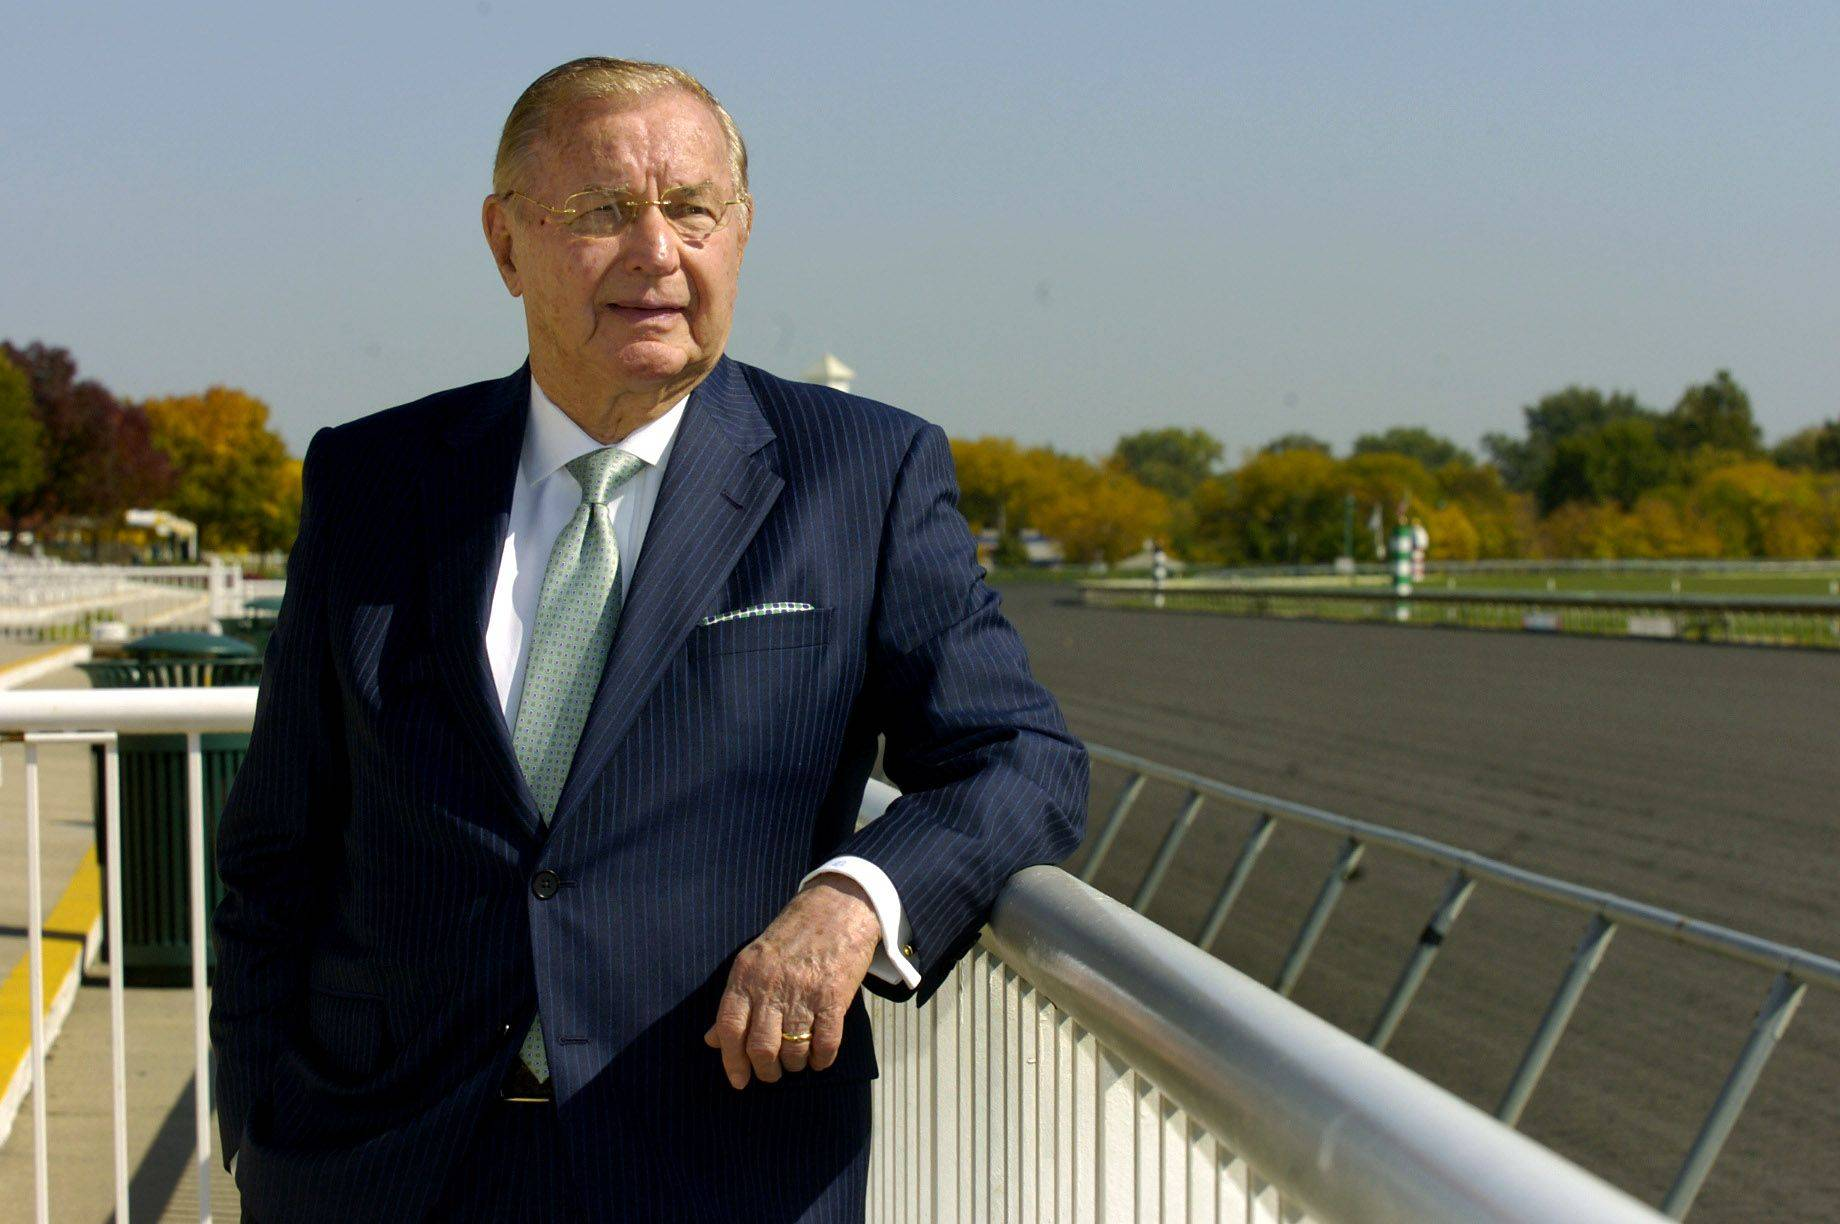 Arlington Park owner Richard Duchossois says he has strategies in place to keep the racetrack going whether it gets slots or not. Industry watchers are skeptical.